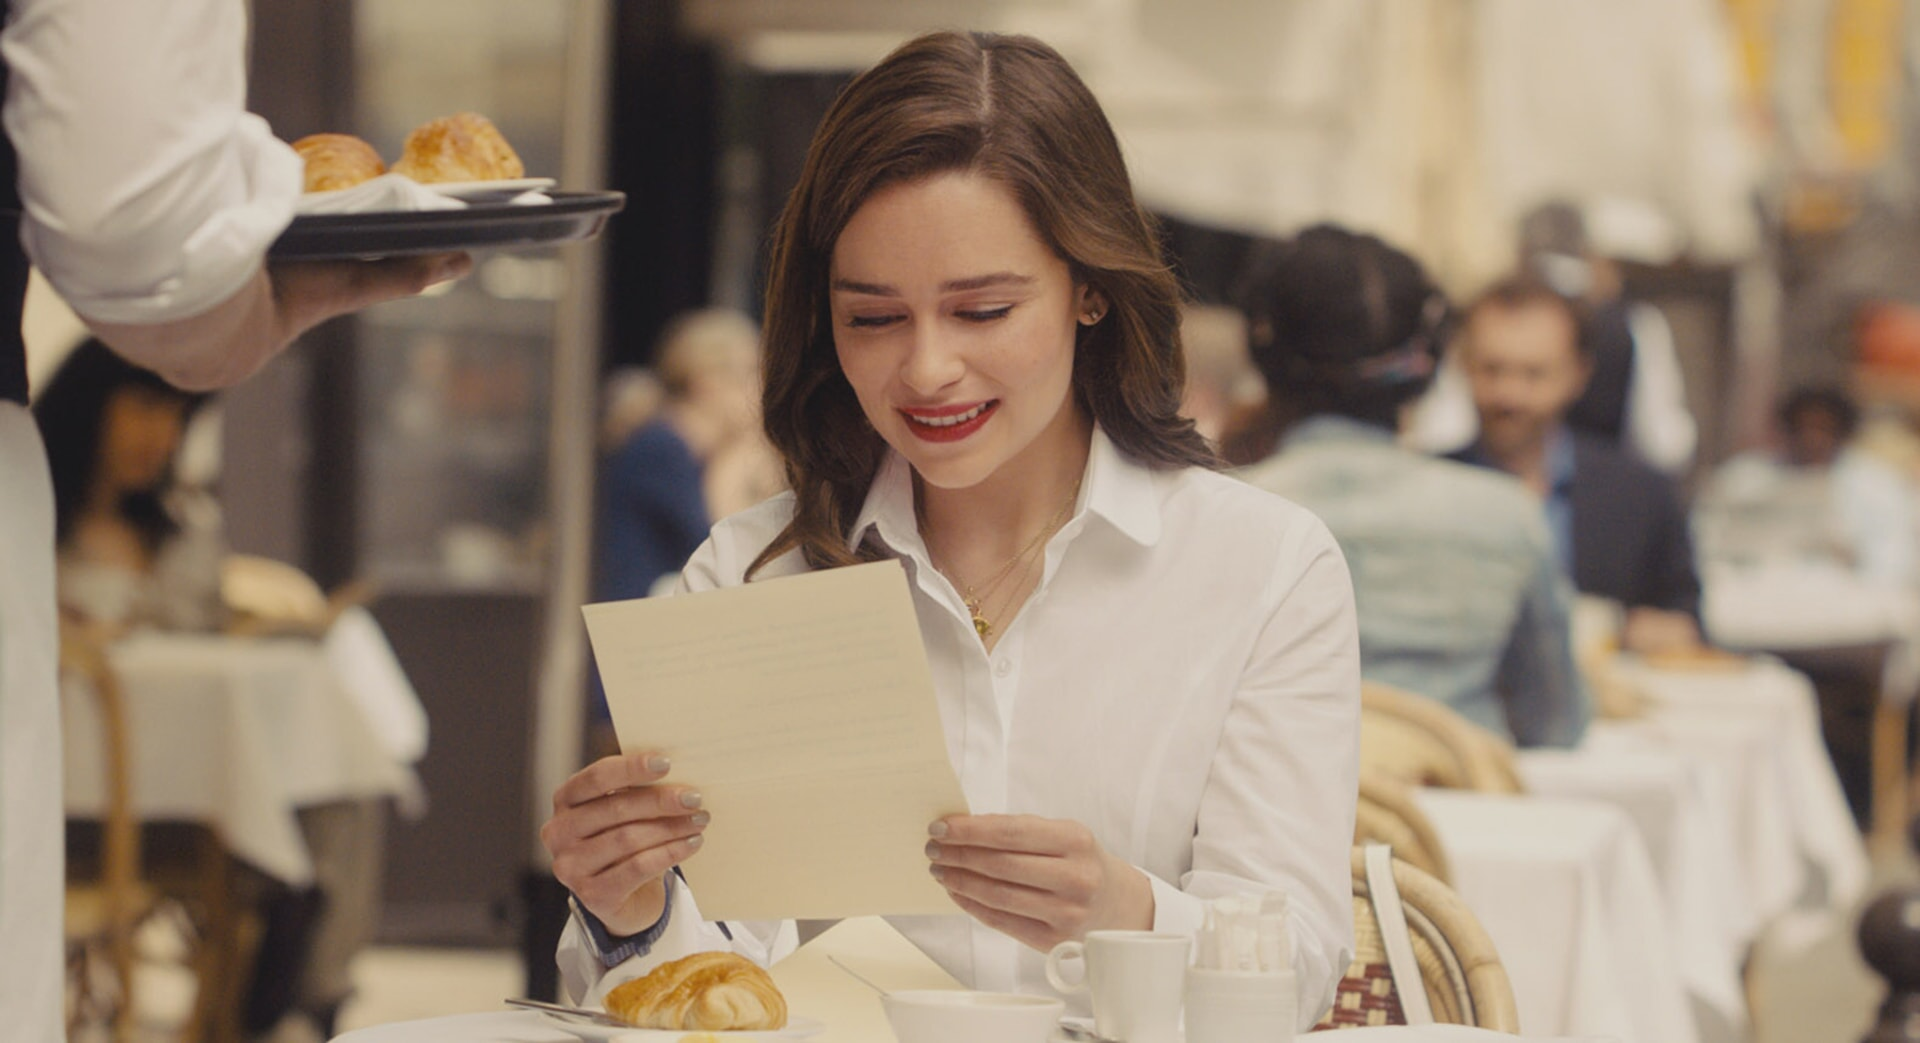 EMILIA CLARKE as Lou Clark reading a note while at an outdoor cafe.